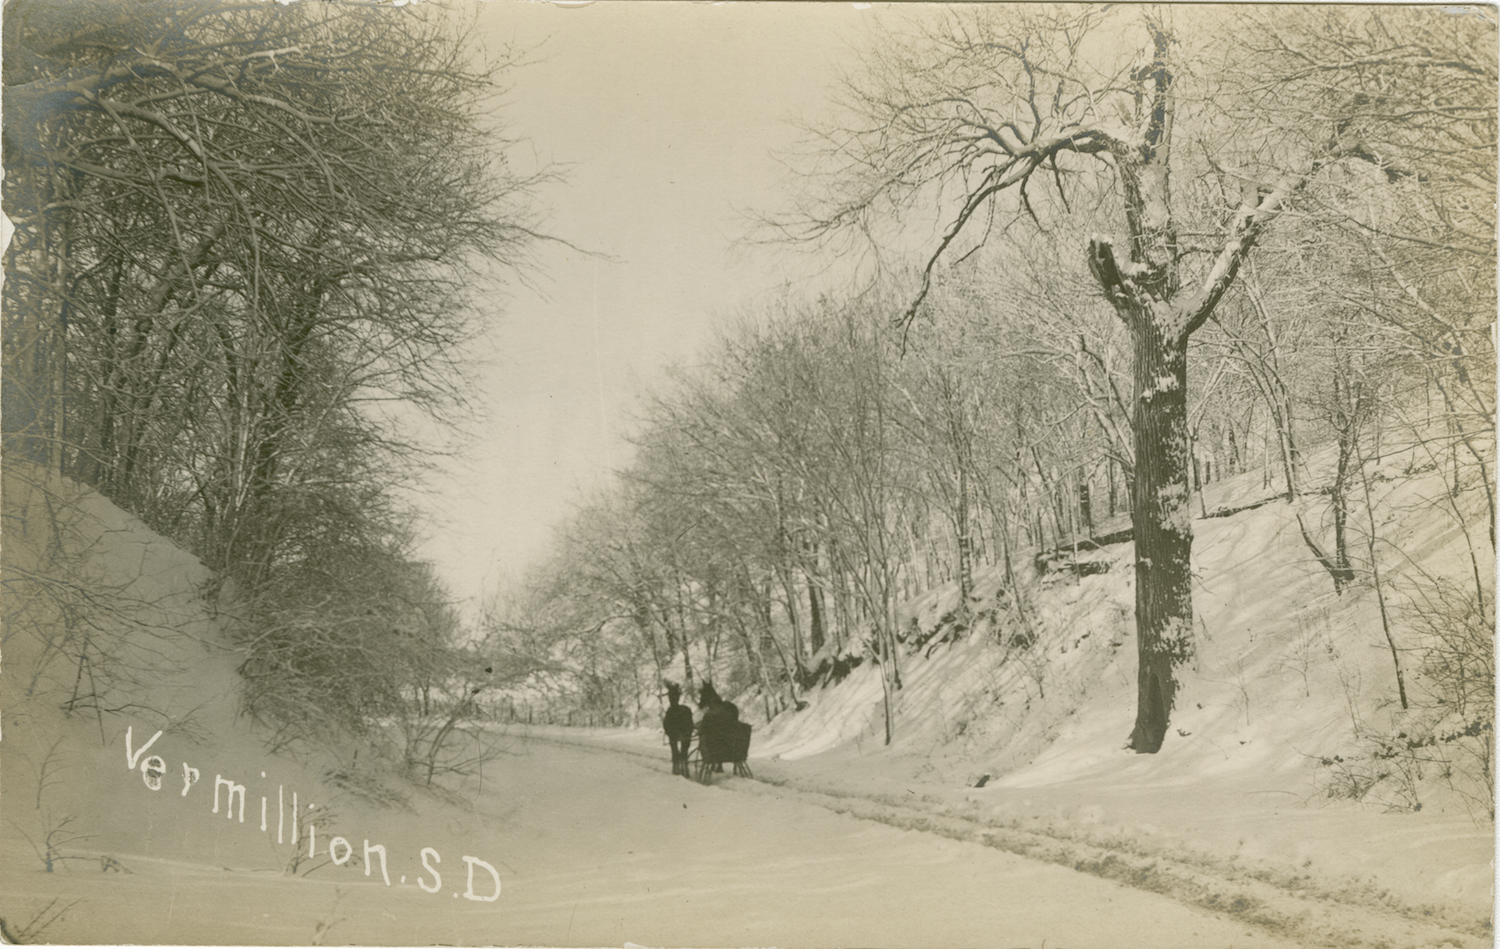 Vintage Photograph - S. Dakota Street in the winter